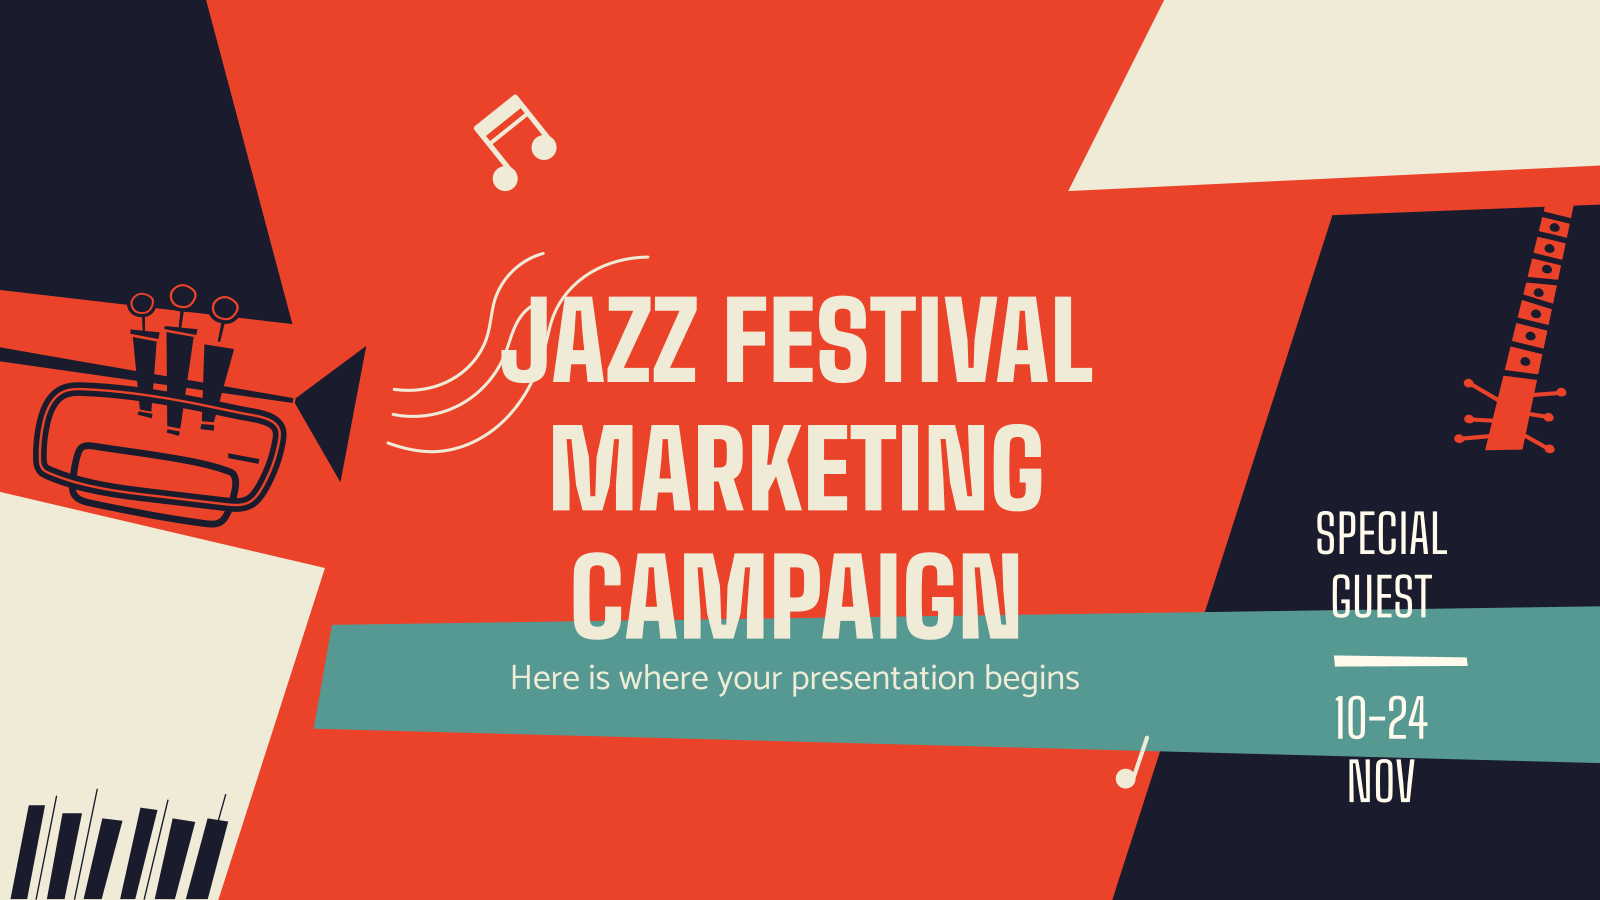 Jazz Festival Marketing Campaign presentation template